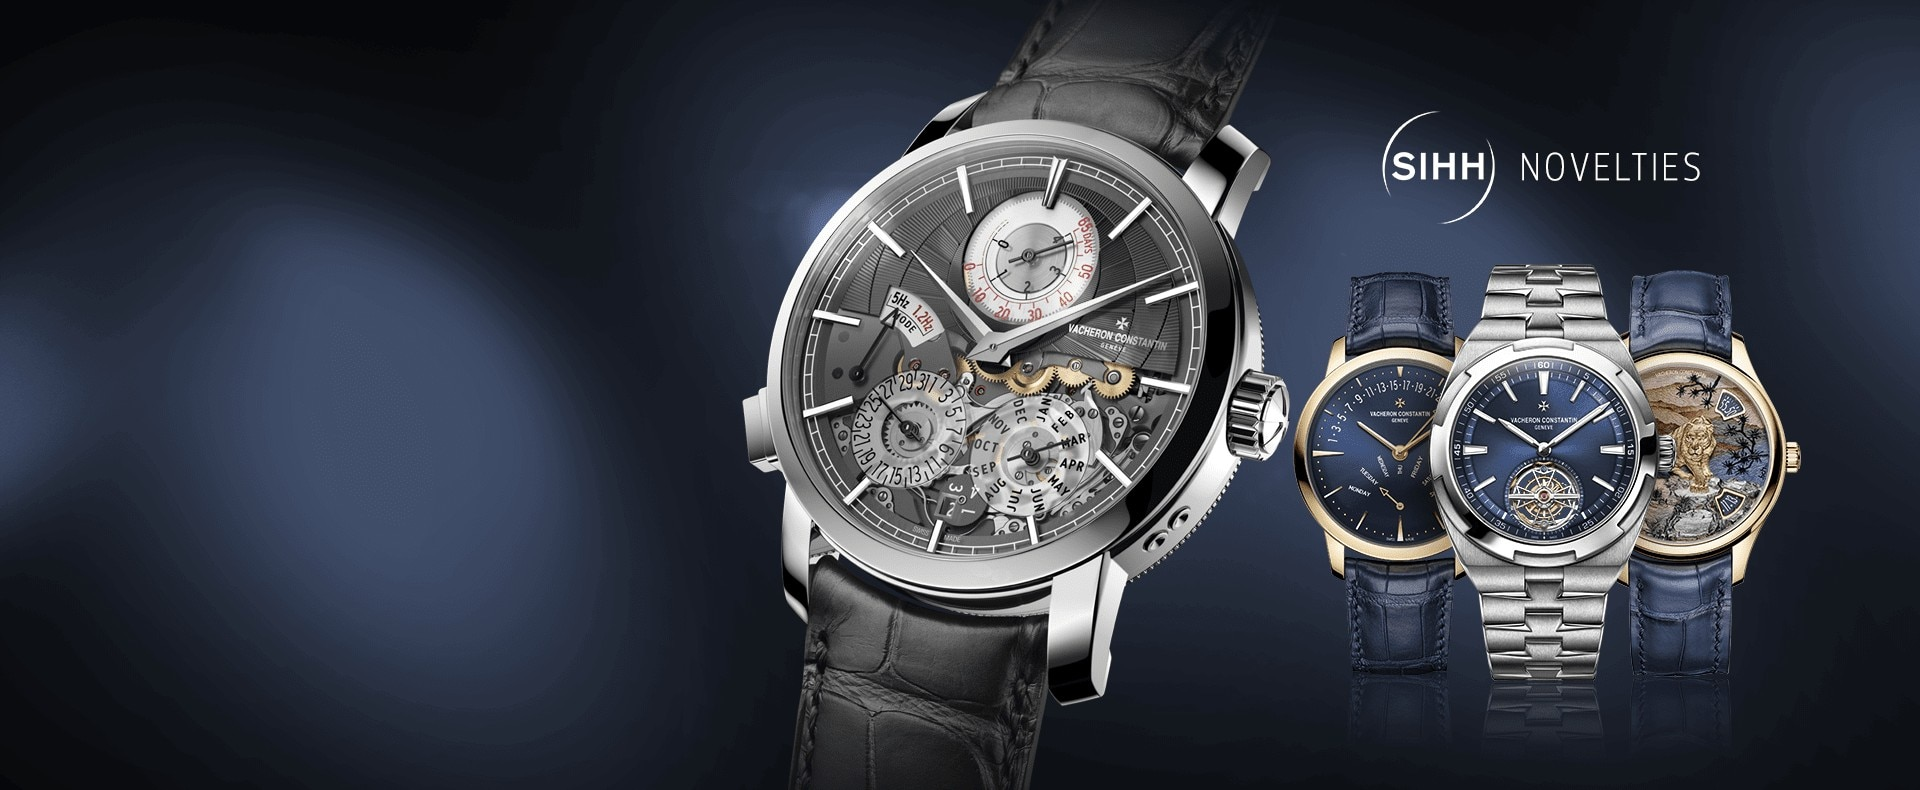 Luxury Watches and Fine Watches